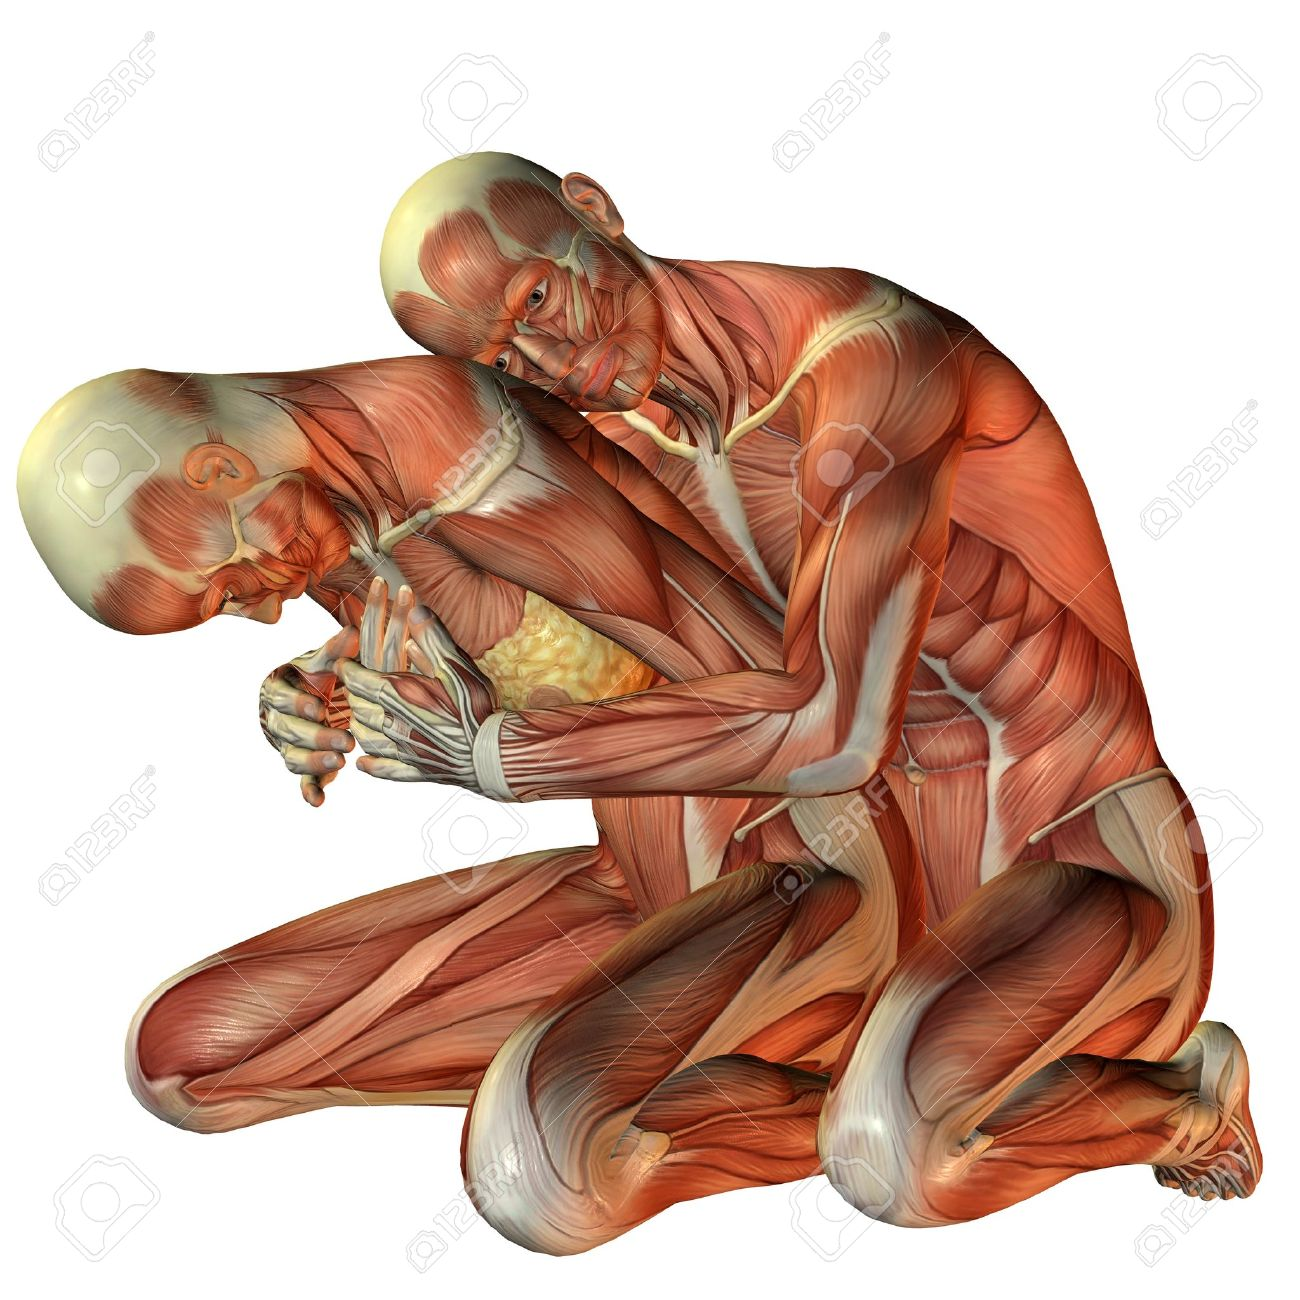 3D Rendering Muscle Man Hugging Woman From Behind Stock Photo ...